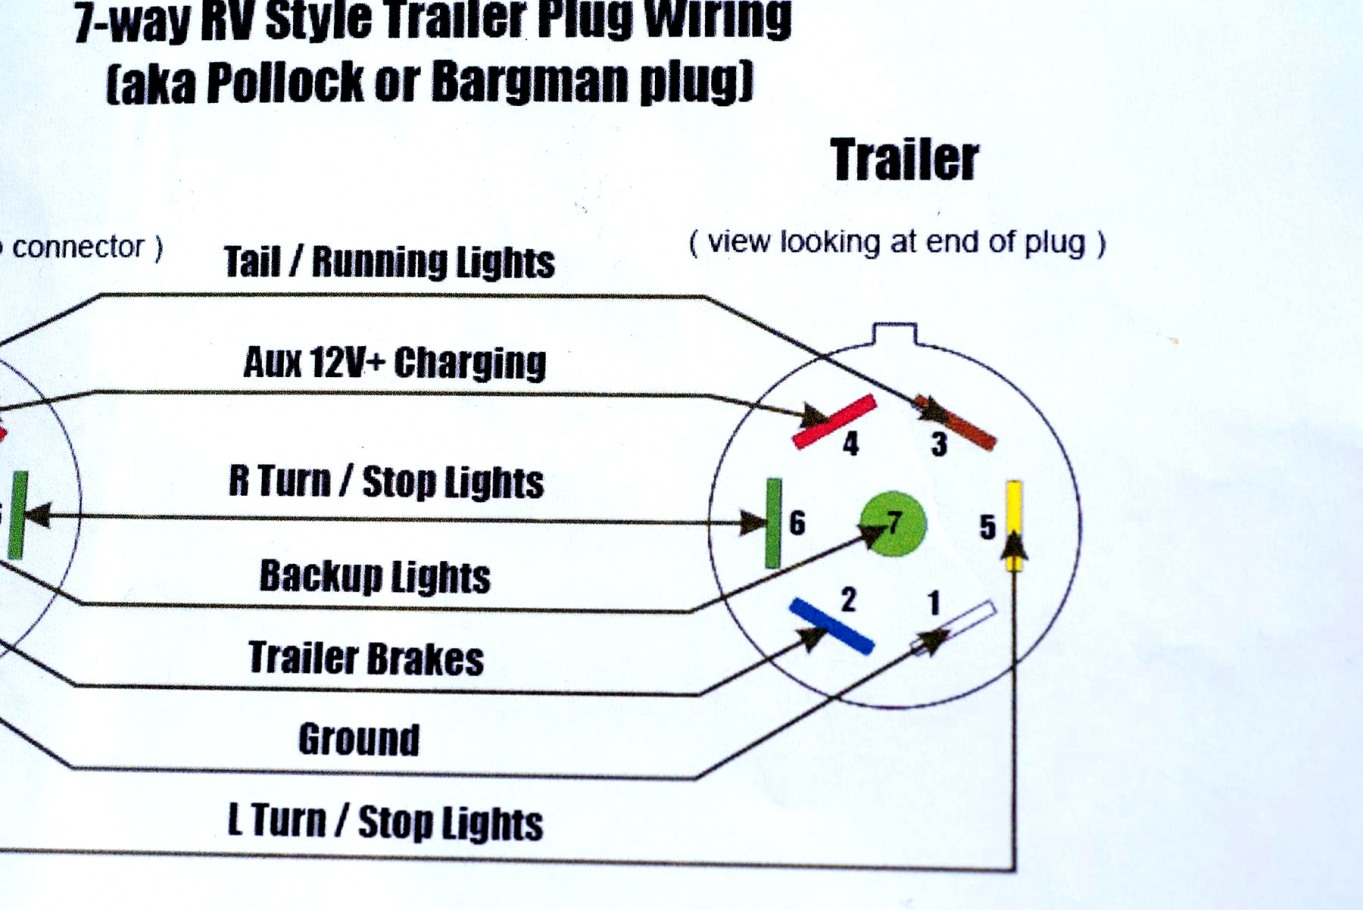 7 Way Trailer Wire Diagram Abs - Wiring Diagrams Thumbs - 7 Wire Tractor Trailer Wiring Diagram